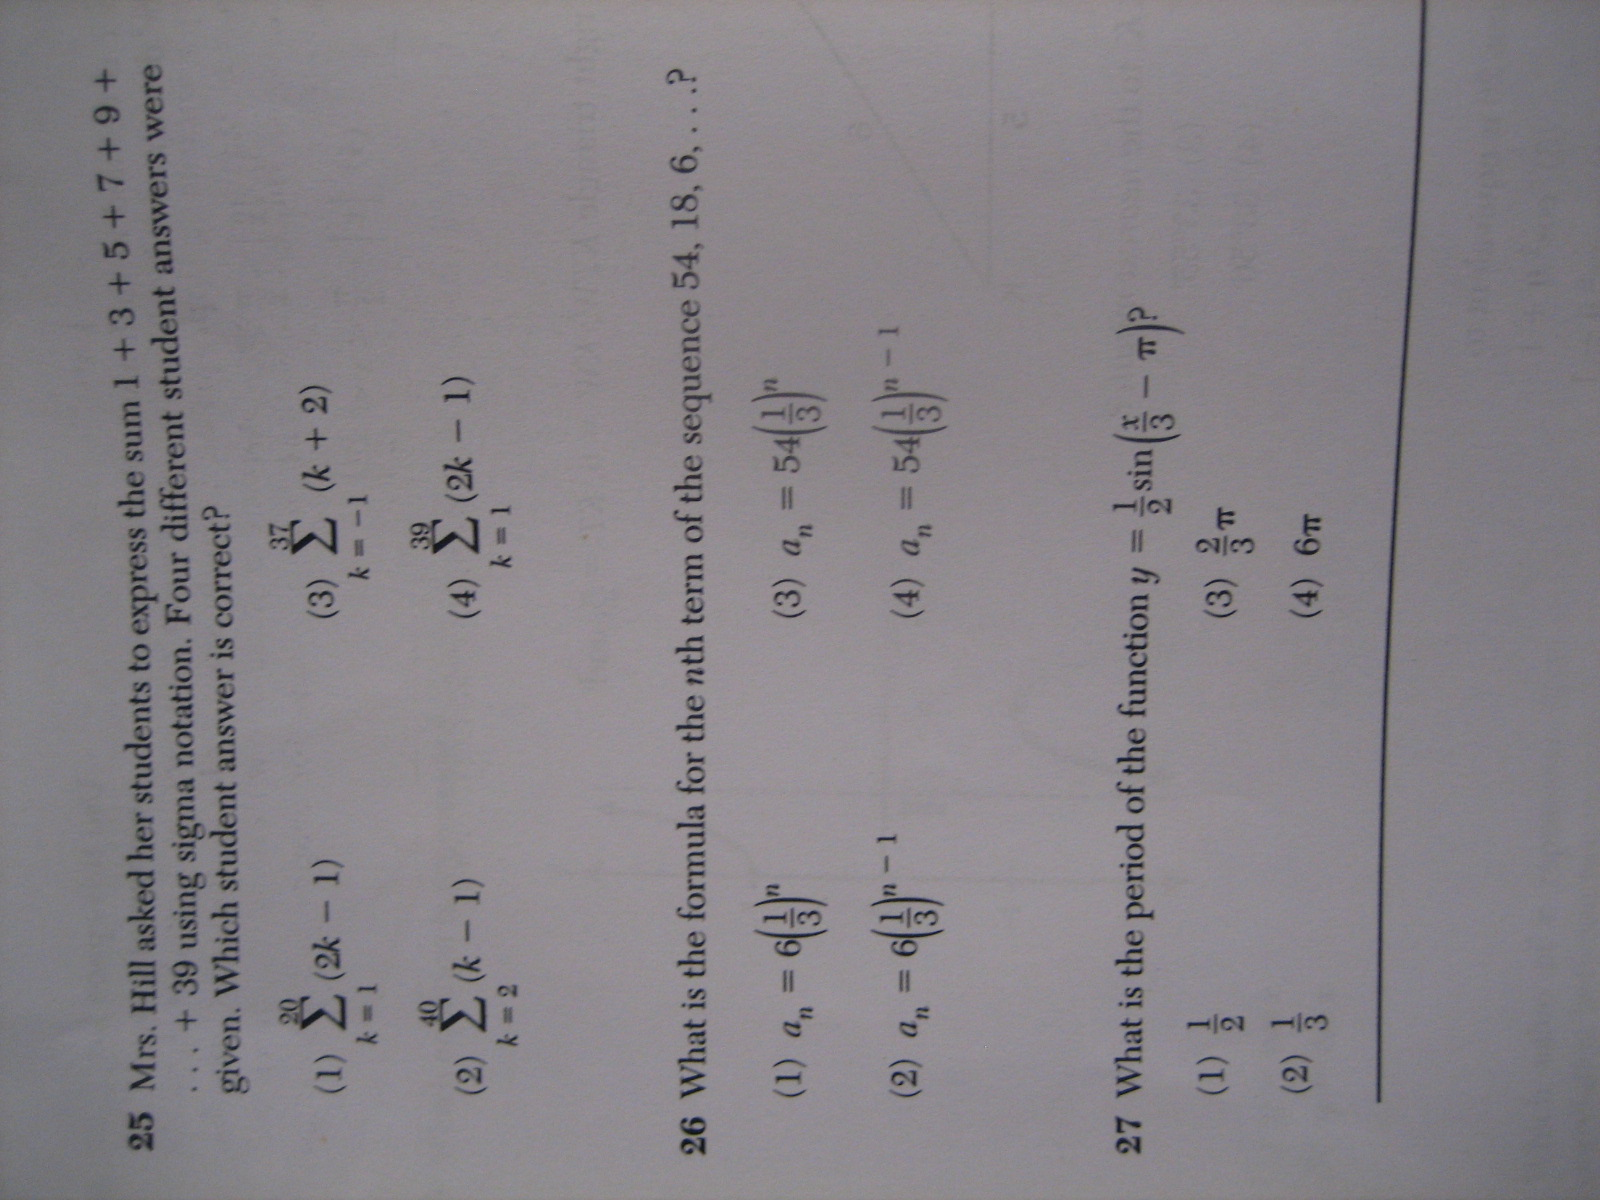 Lgebr 2 Trig Ometry Regents Full List Of Multiple Choice